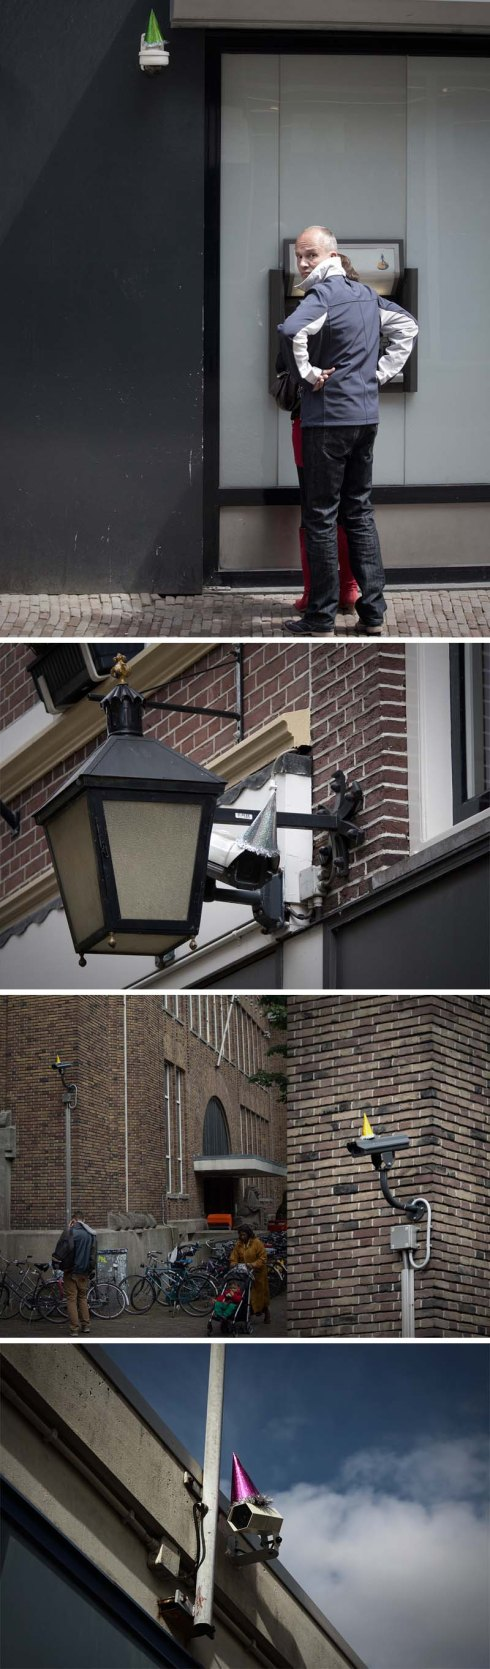 Surveillance Cameras with party hats in Utrecht, Netherlands, in honor of George Orwell's Birthday, Front404, street art